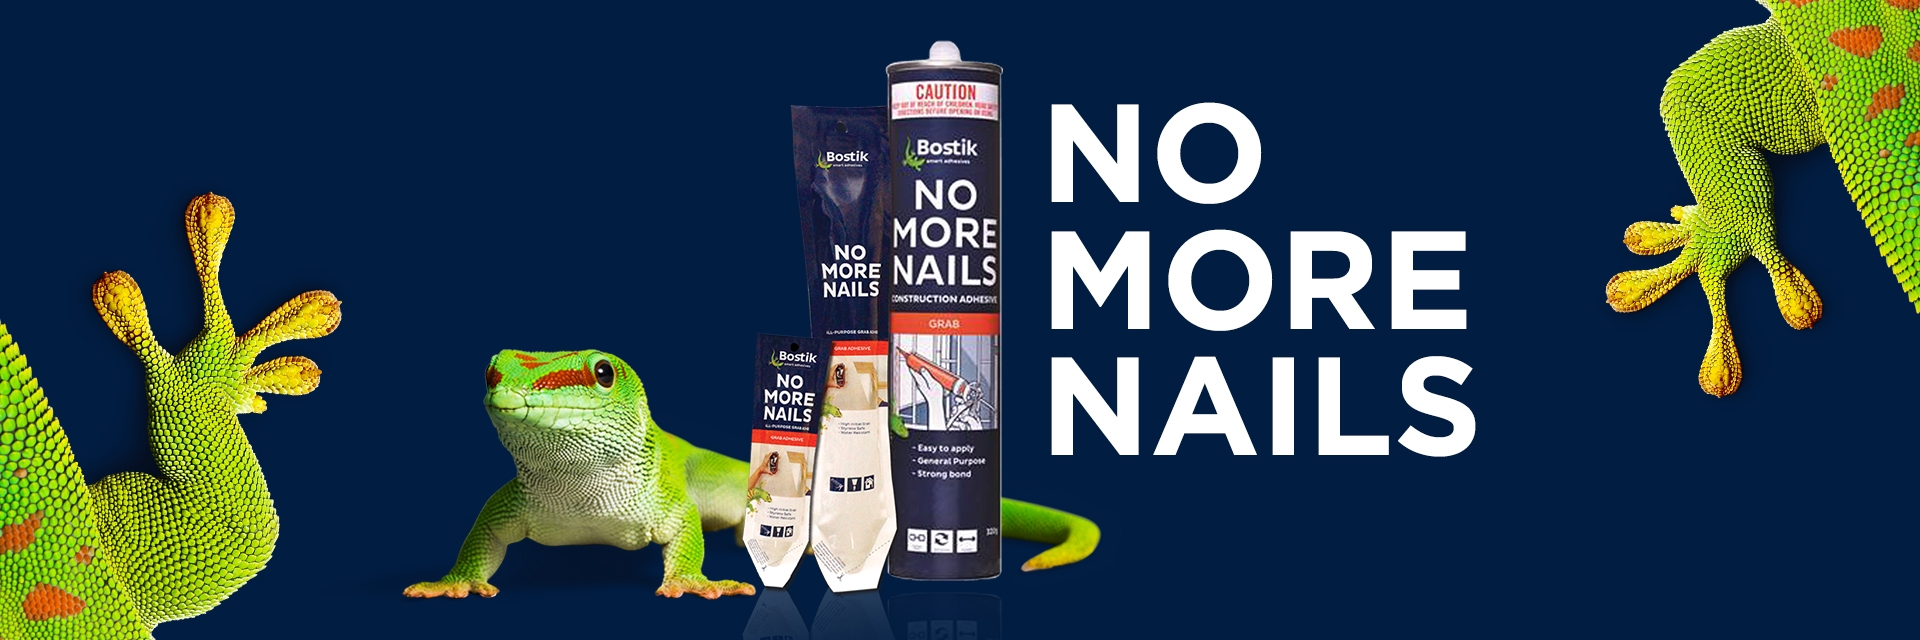 Bostik DIY Philippines No More Nails Products Grab Adhesives image 1920x640